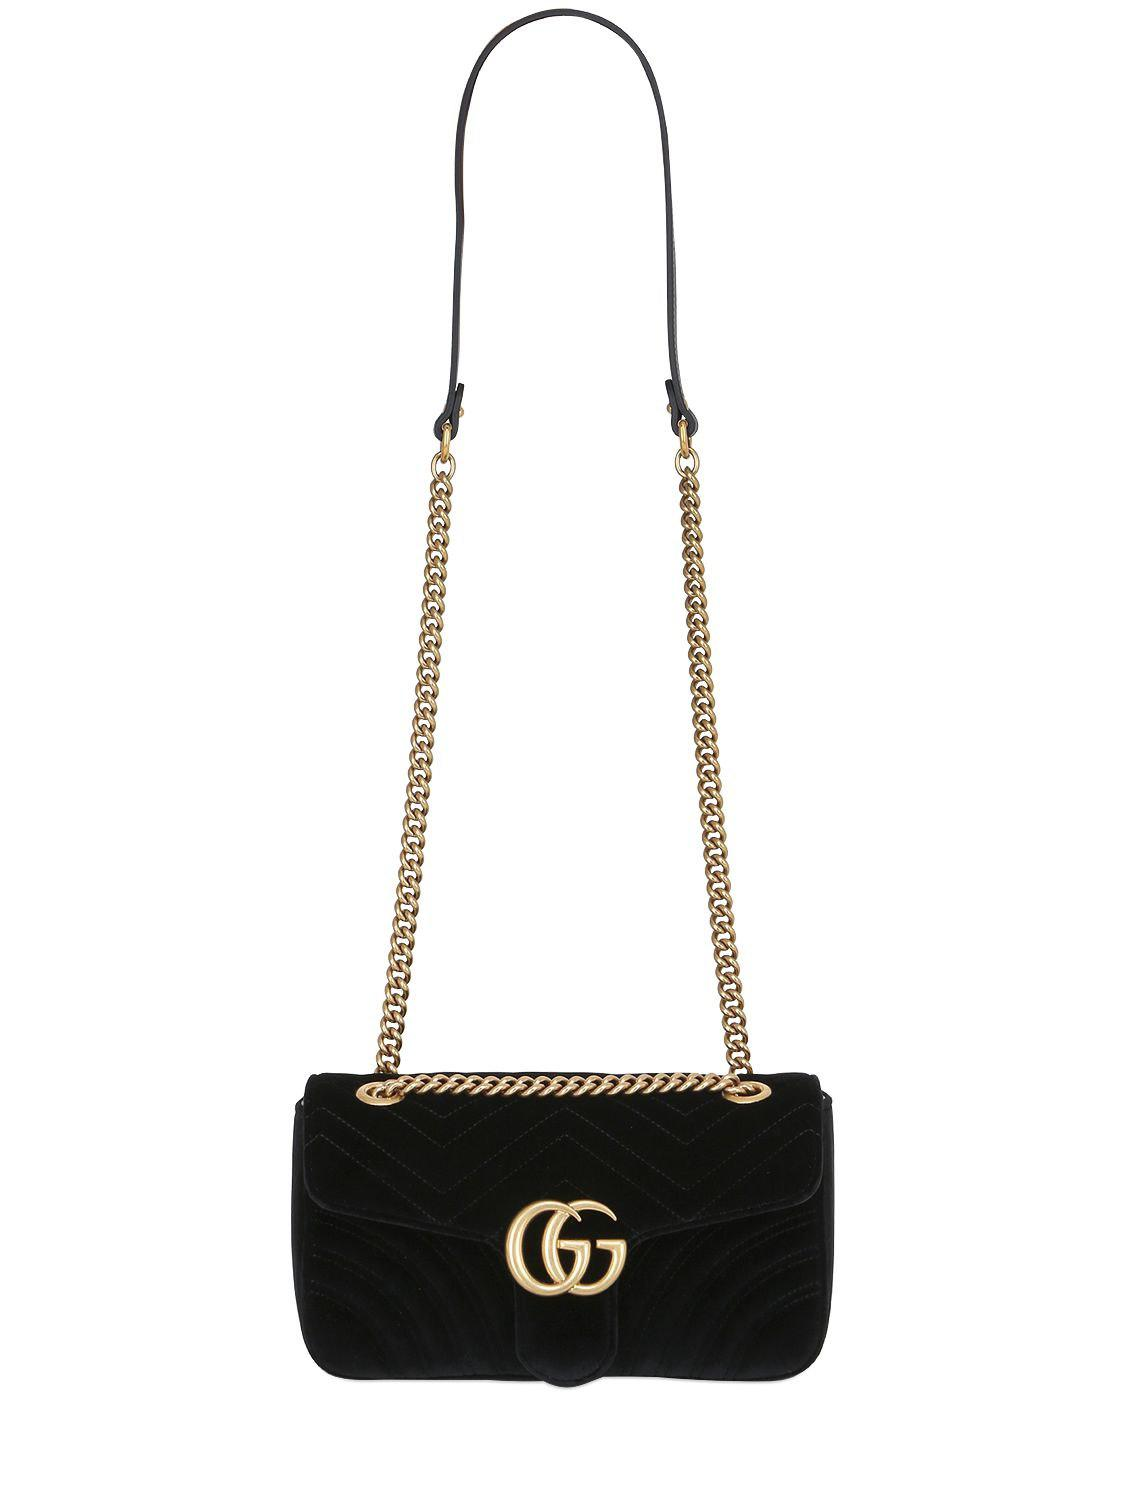 Gucci - Black Small Gg Marmont 2.0 Velvet Shoulder Bag - Lyst. View  fullscreen 0c64f7296d820